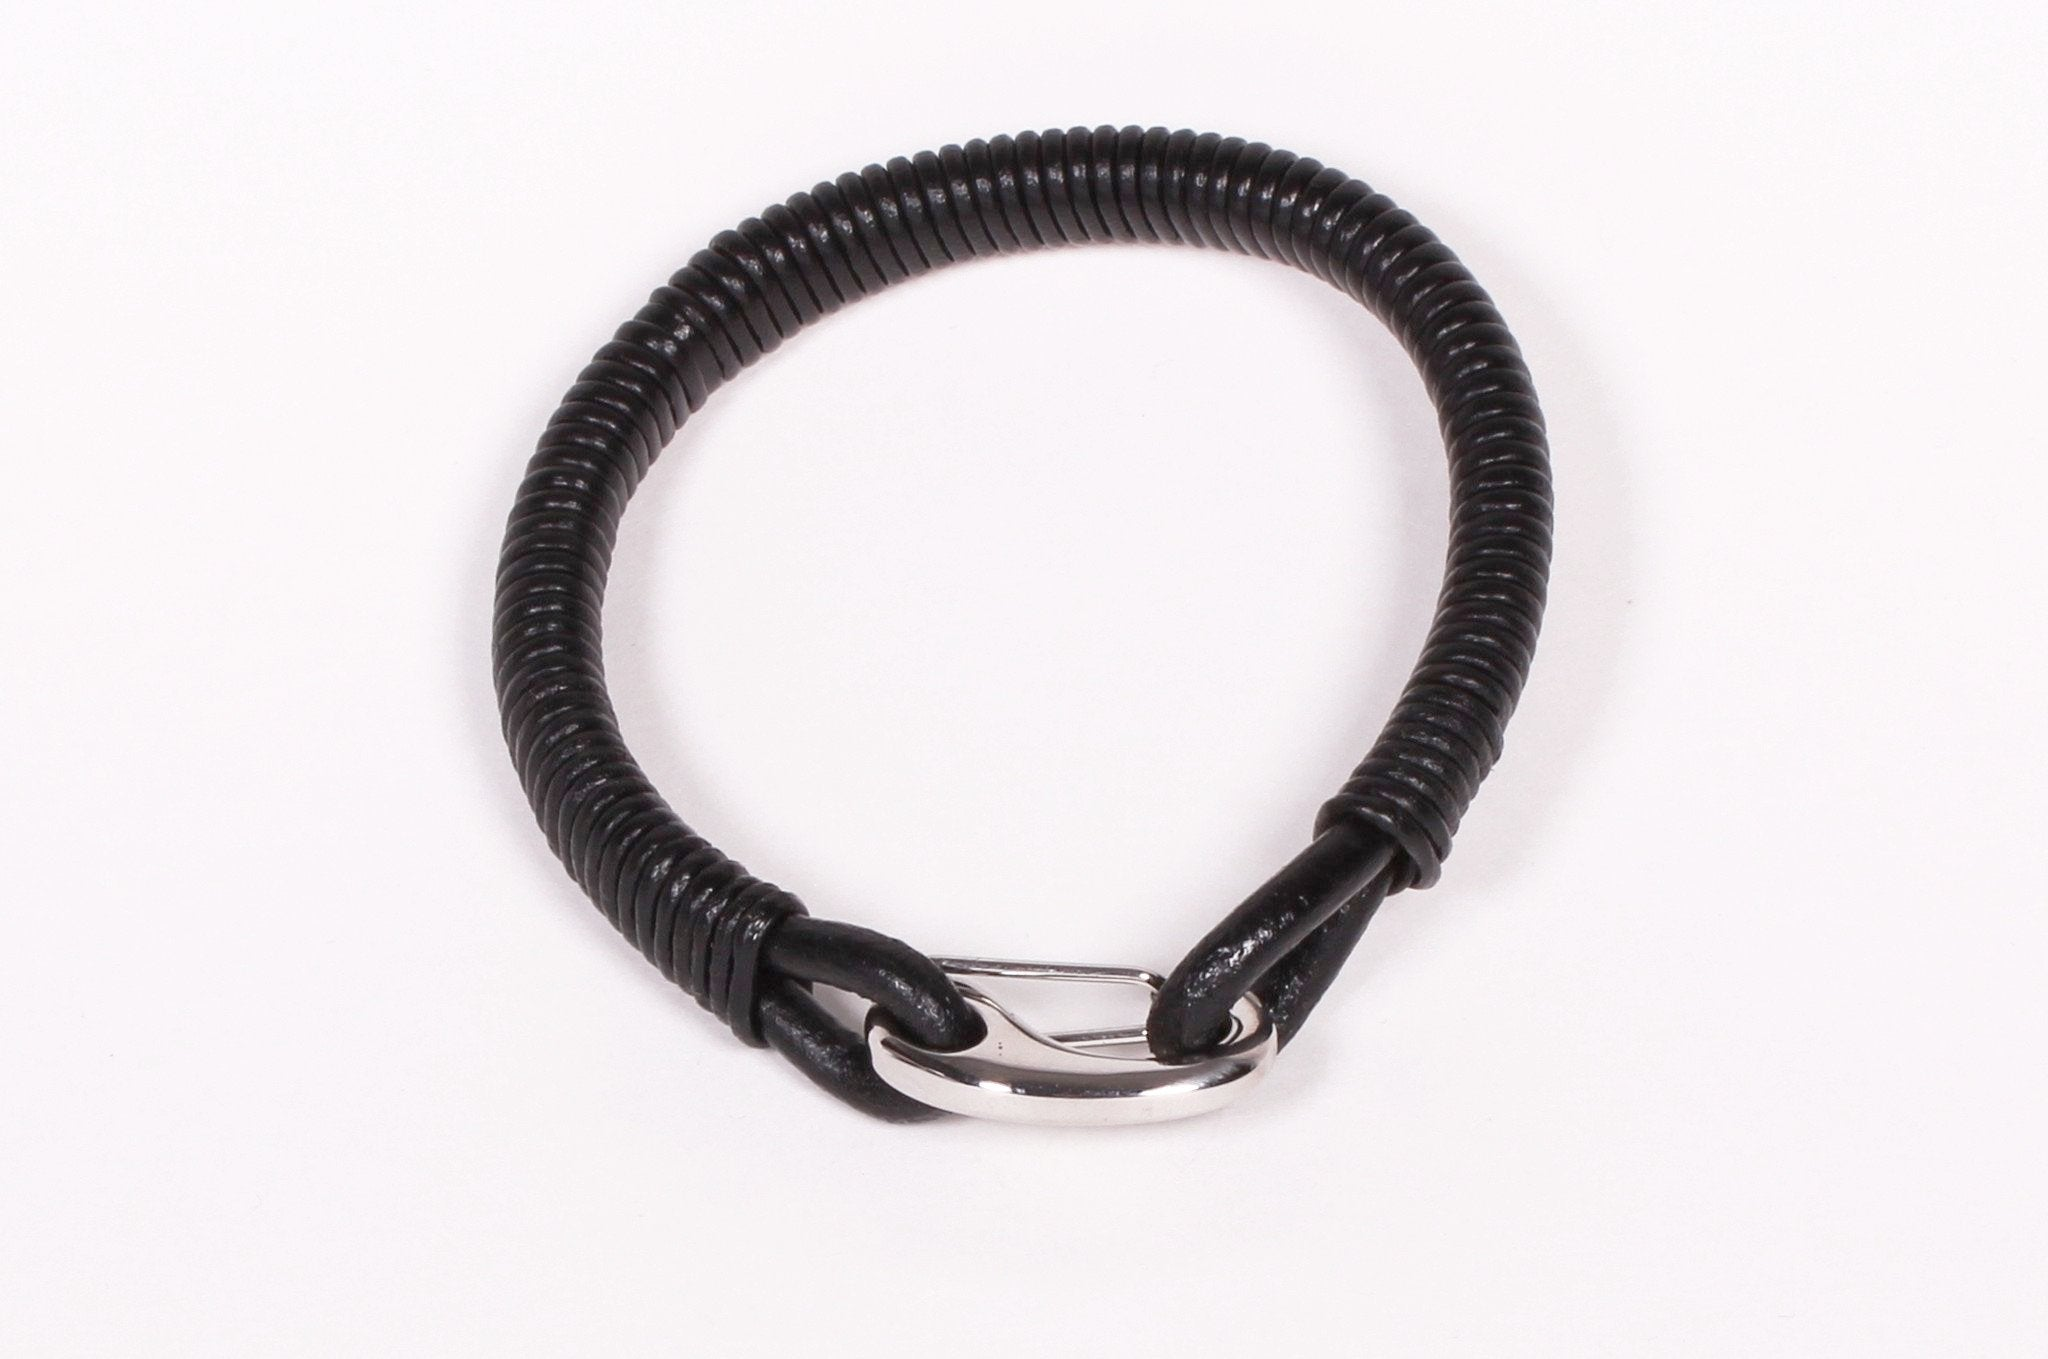 Black Leather and Stainless Steel Clip Bracelet